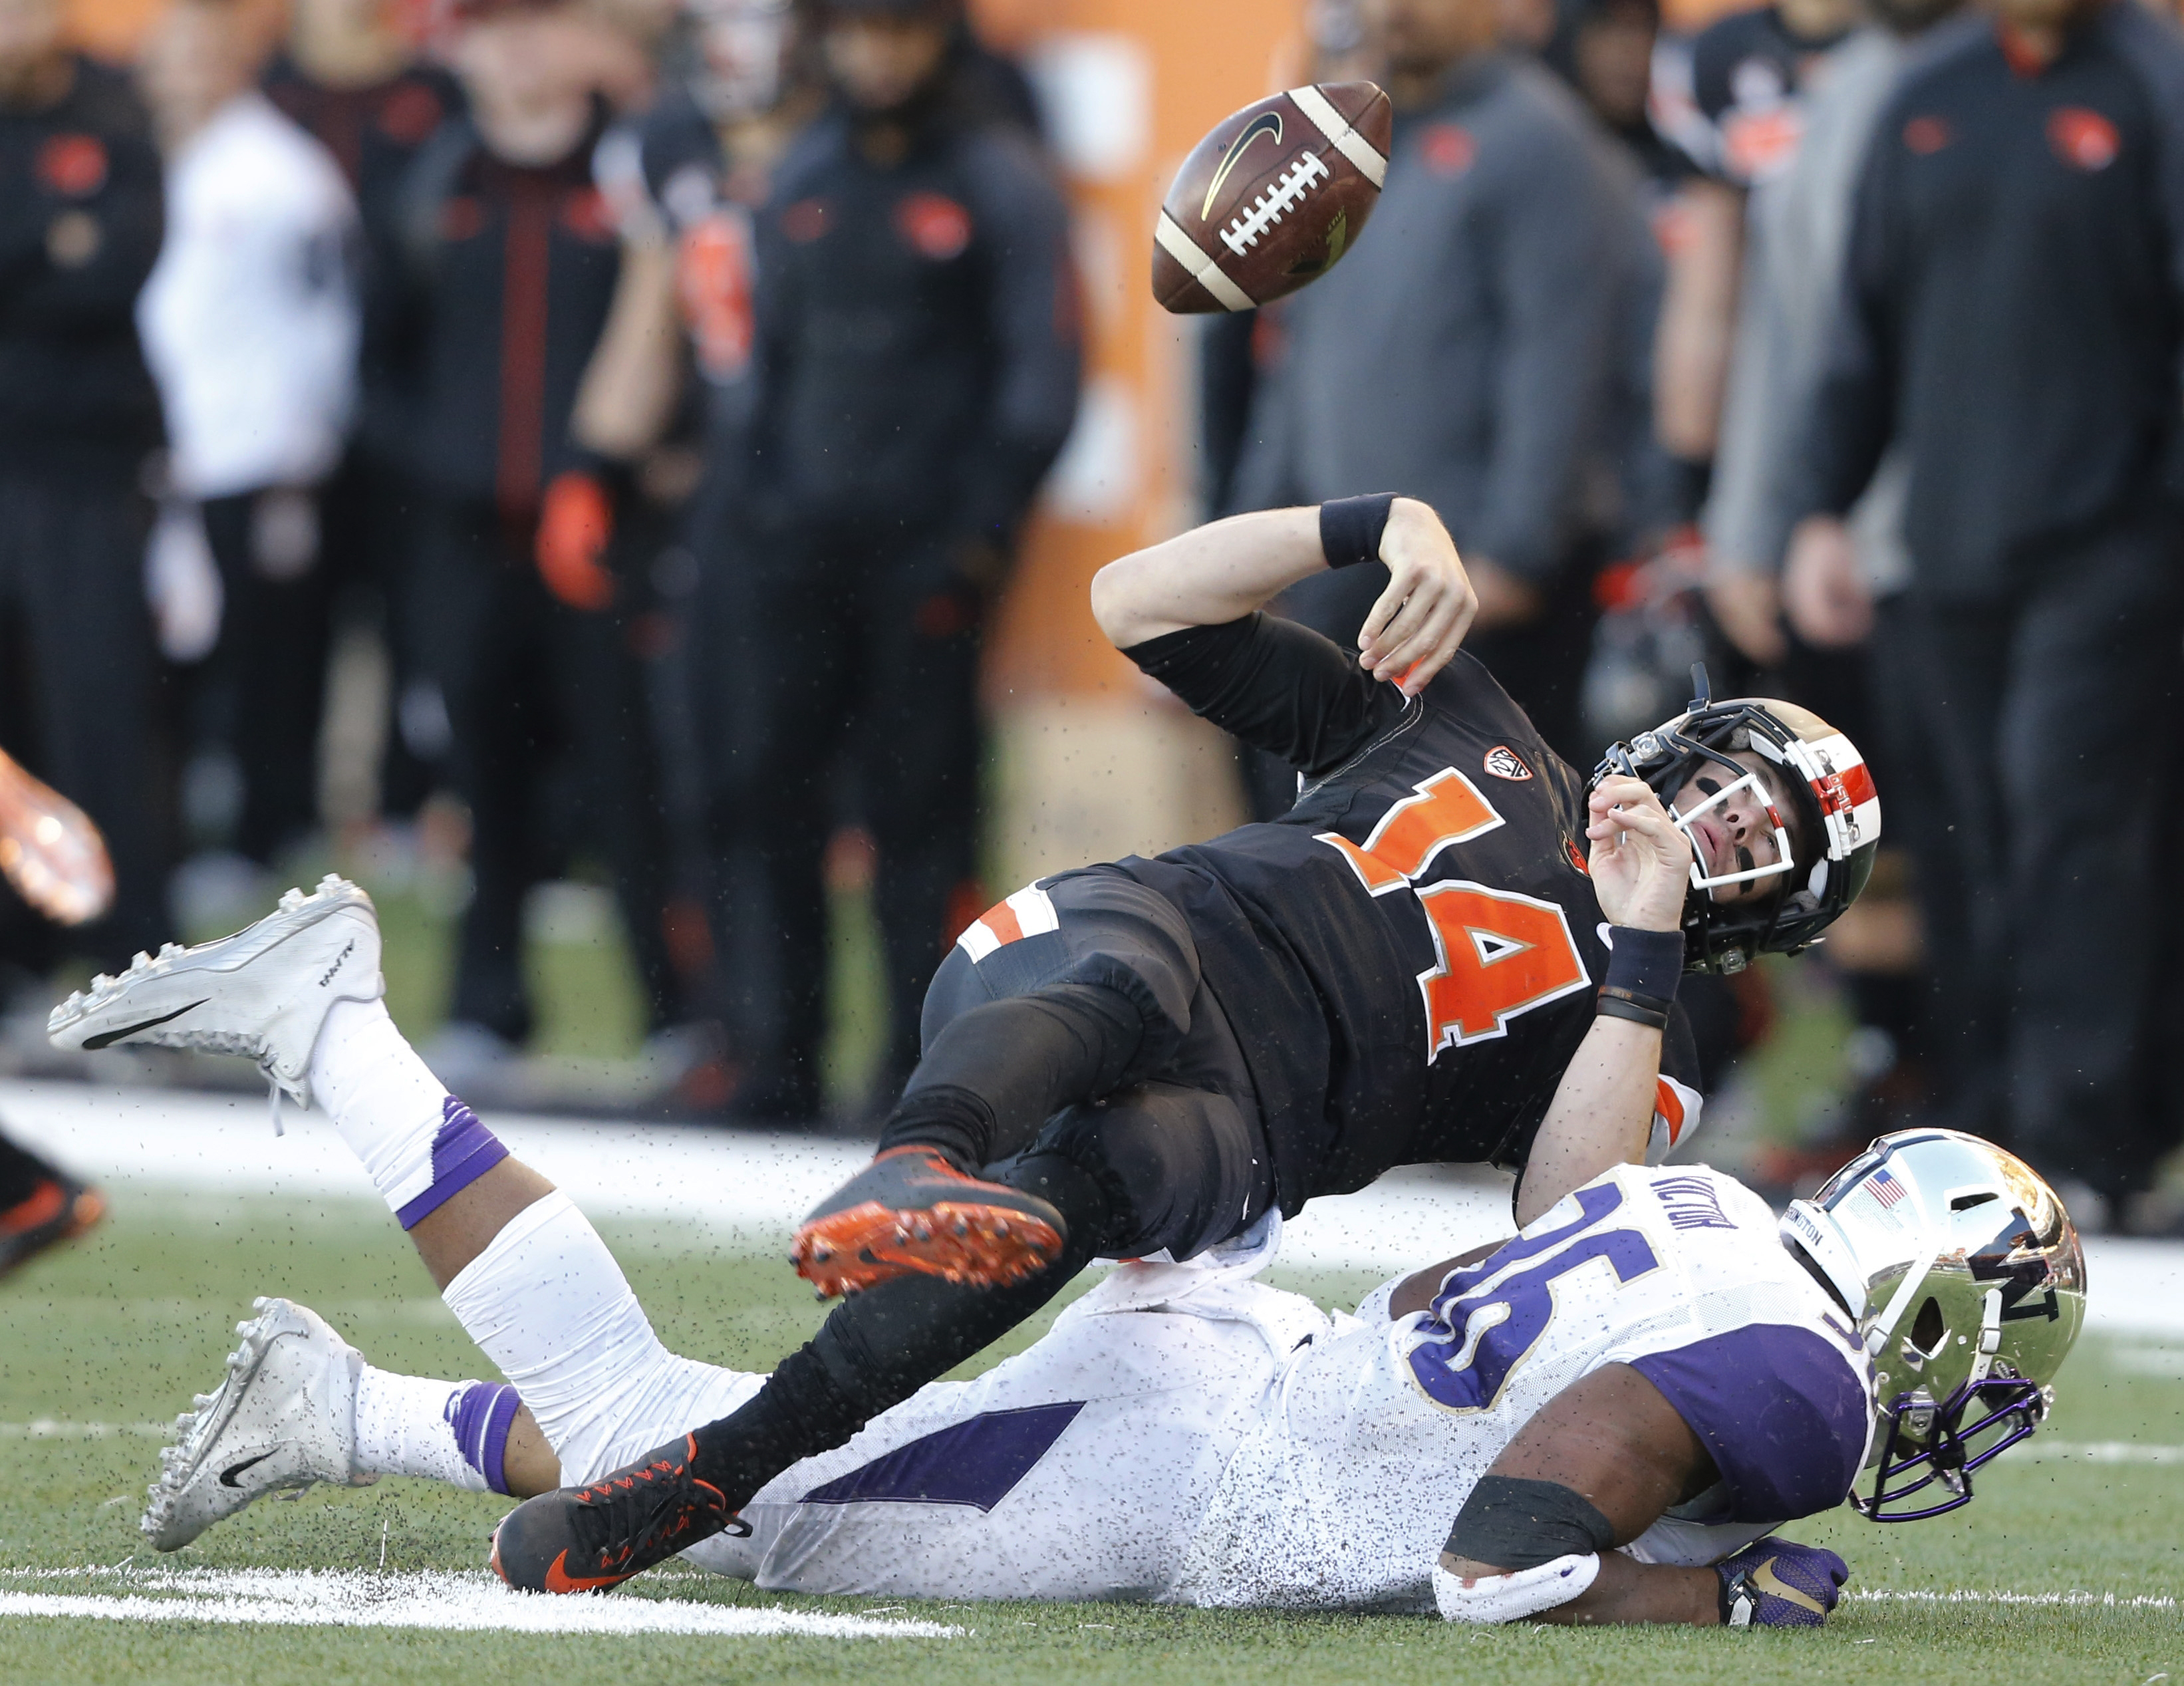 Oregon State quarterback Nick Mitchell fumbles the ball after being hit by Washington's Azeem Victory in the first half of an NCAA football game, in Corvallis, Ore., on Saturday, Nov. 21, 2015. Washington recovered the fumble. y(AP Photo/Timothy J. Gonzal